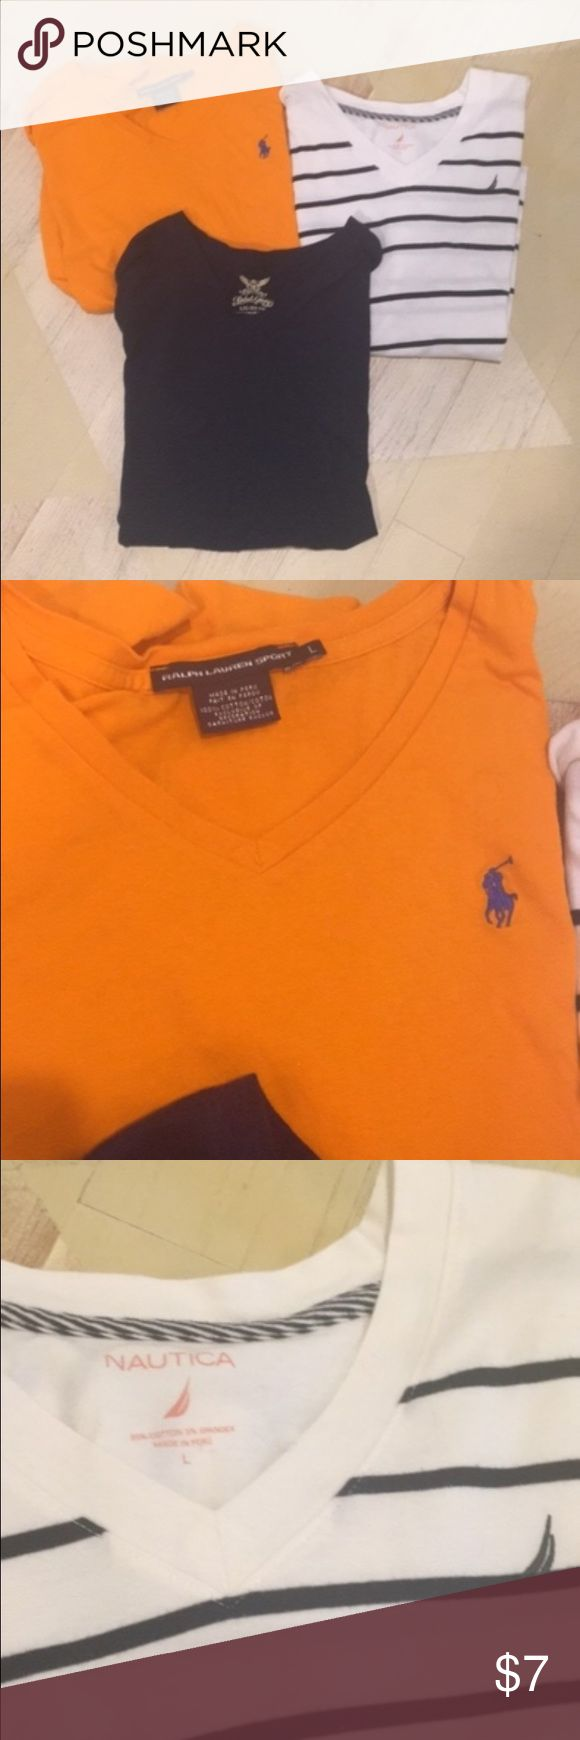 Bundle 3 v-neck tees All 3 are size large but for more like a medium The orange tee is Ralph Lauren  The navy tee is Faded Glory The navy and white stripped is Nautica All three have been worn but are in good condition. Only selling as a bundle Let me know if you want any individual pics or any more detailed pics Ralph Lauren Tops Tees - Short Sleeve